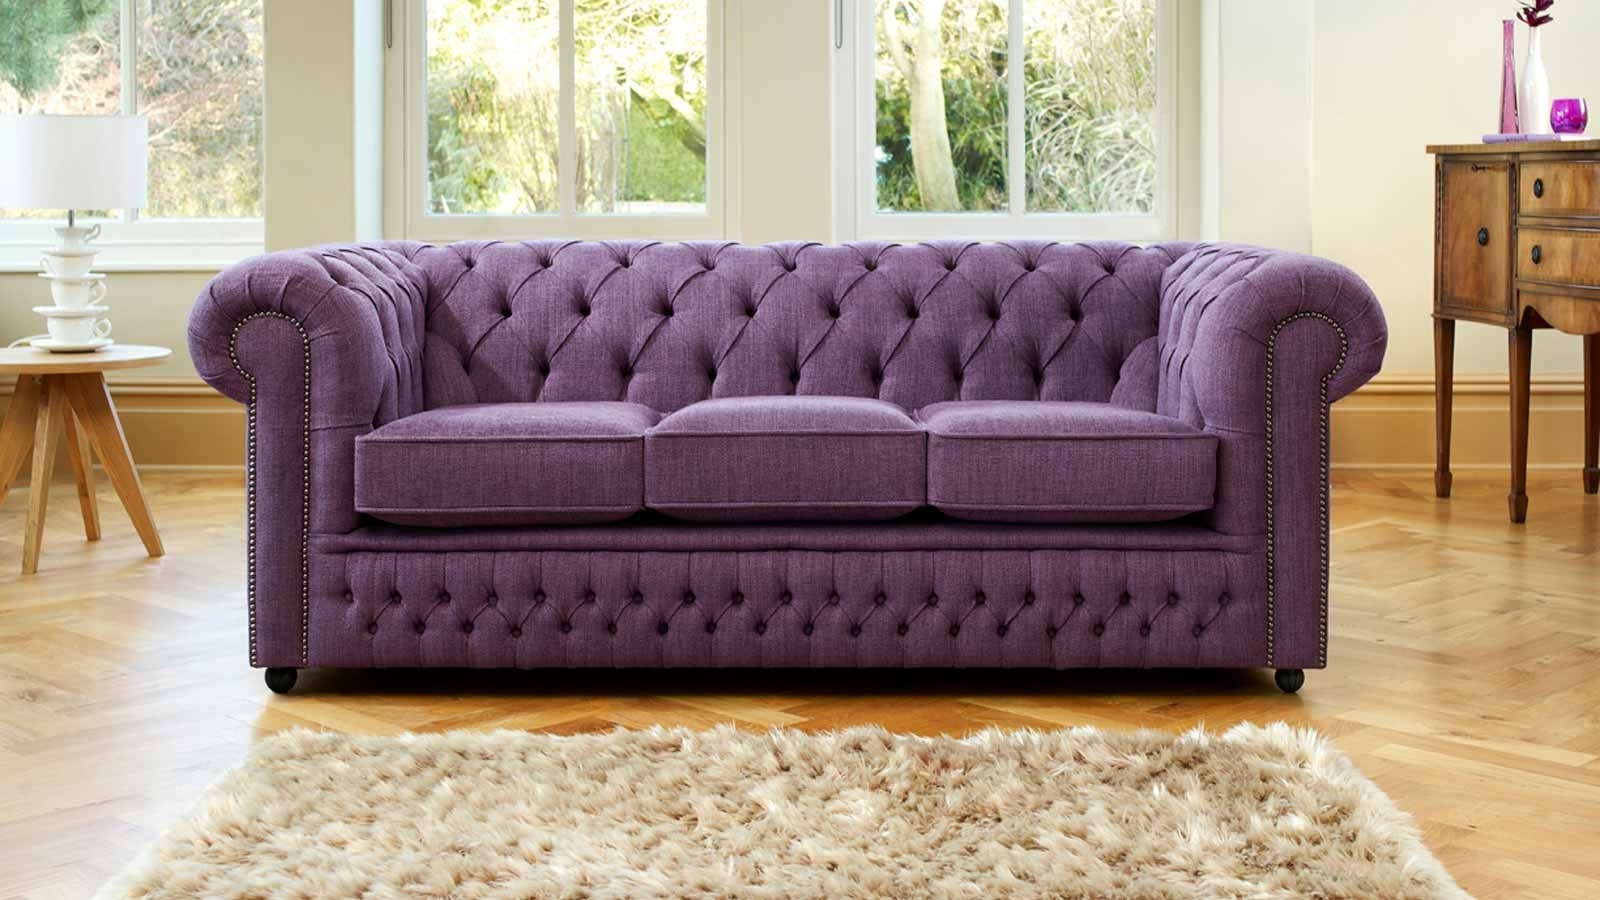 2018 Chesterfield Sofas And Chairs Intended For Furniture: Purple Fabric Chesterfield Sofa With Wooden Chest (View 19 of 20)